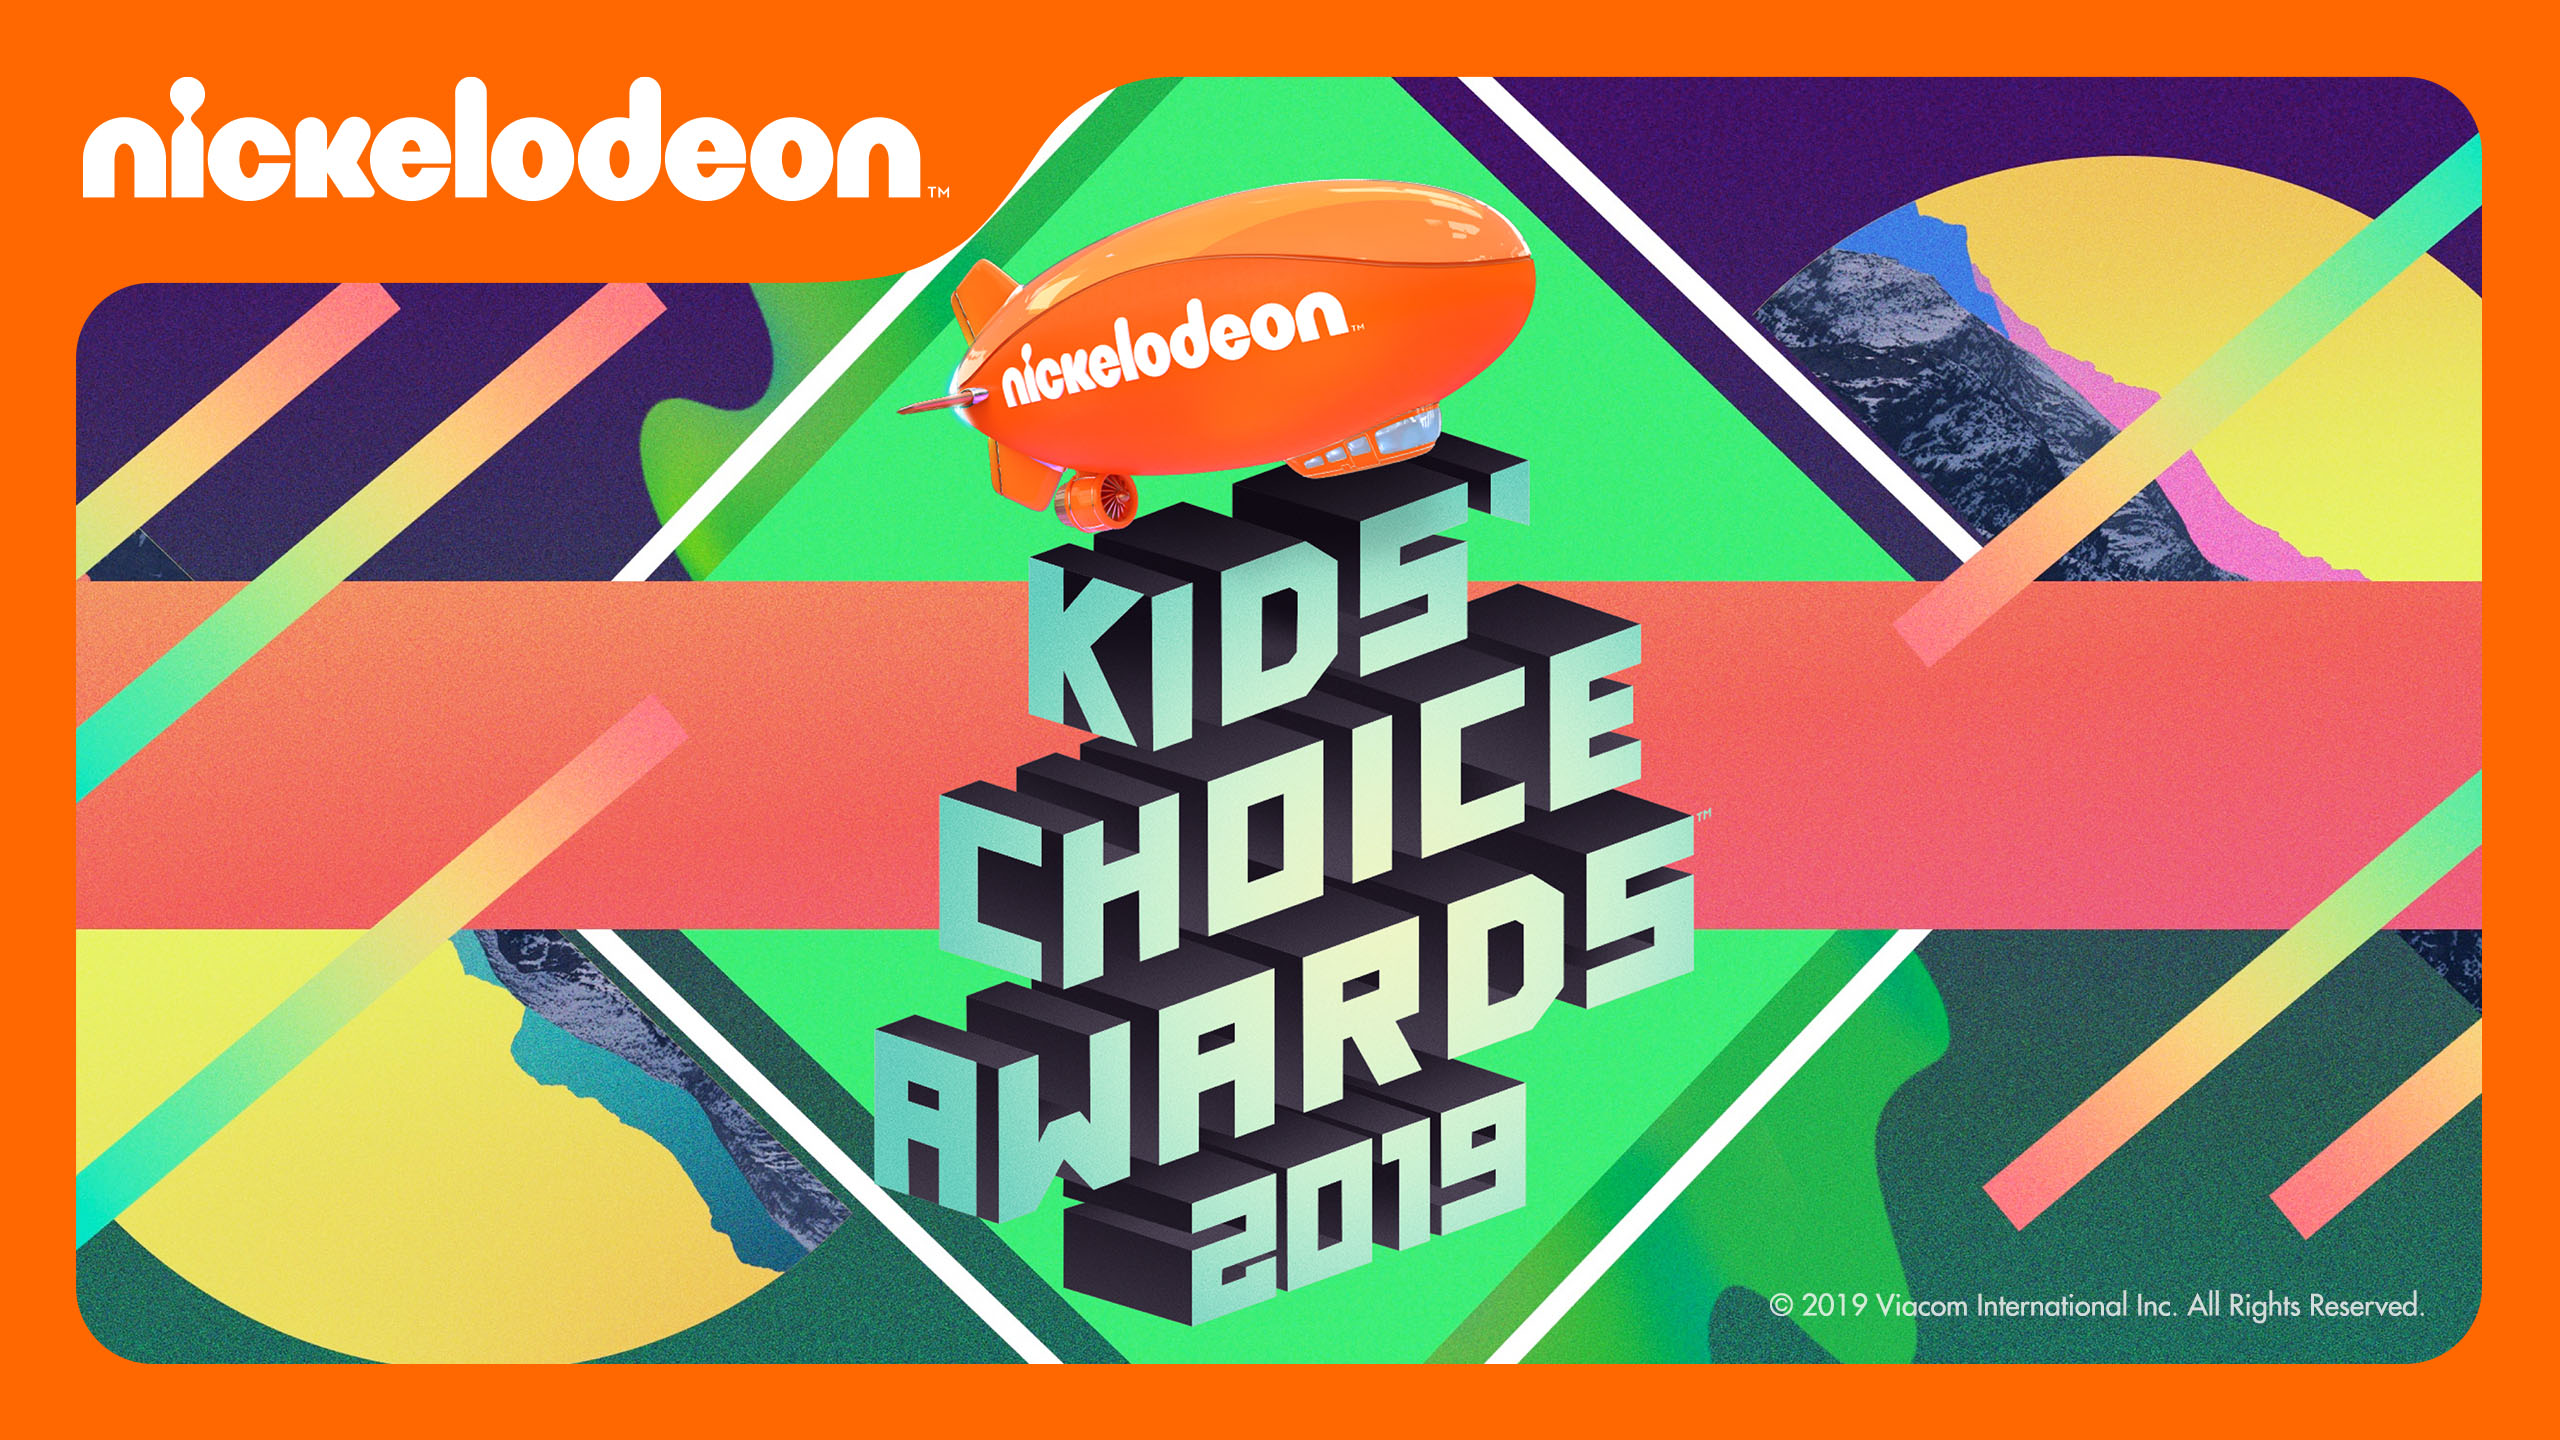 NICKELODEON INTERNATIONAL ANNOUNCES KIDS' CHOICE AWARDS 2019 GLOBAL